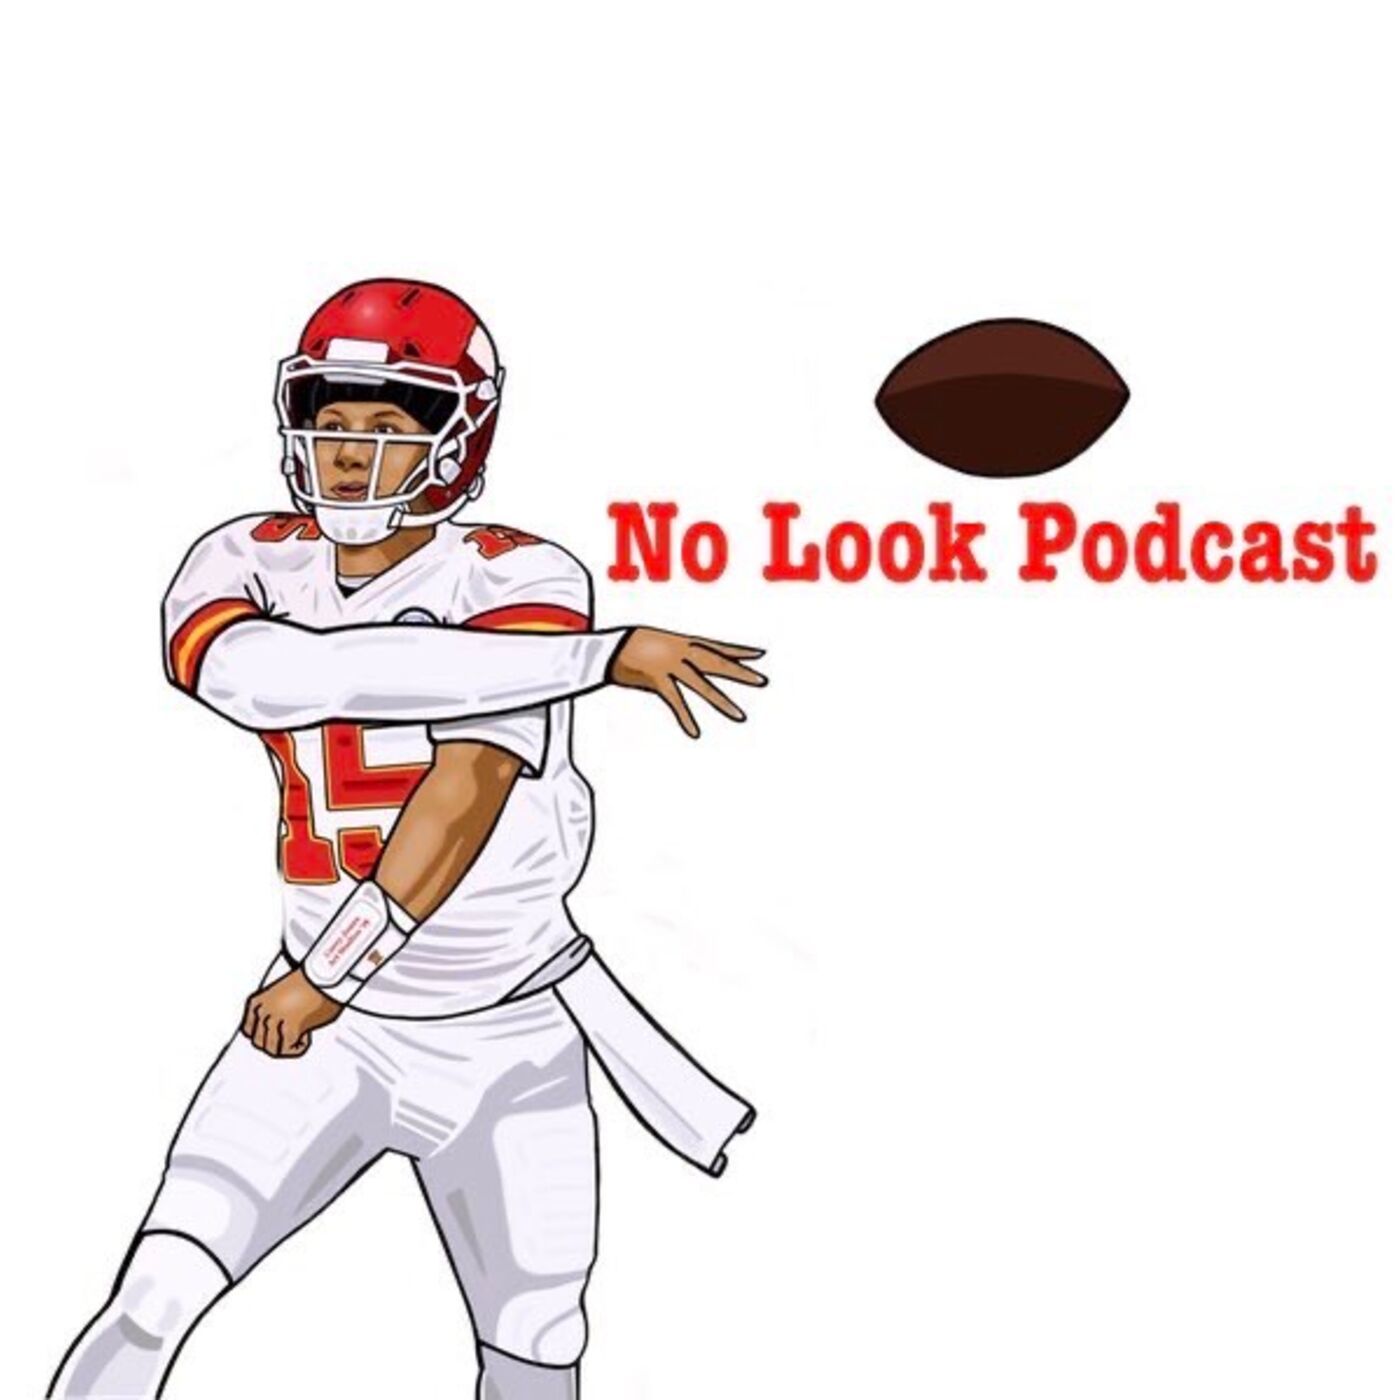 Episode 3- #RIPChadMahomes, Week 2 recap and Chiefs/Ravens preview